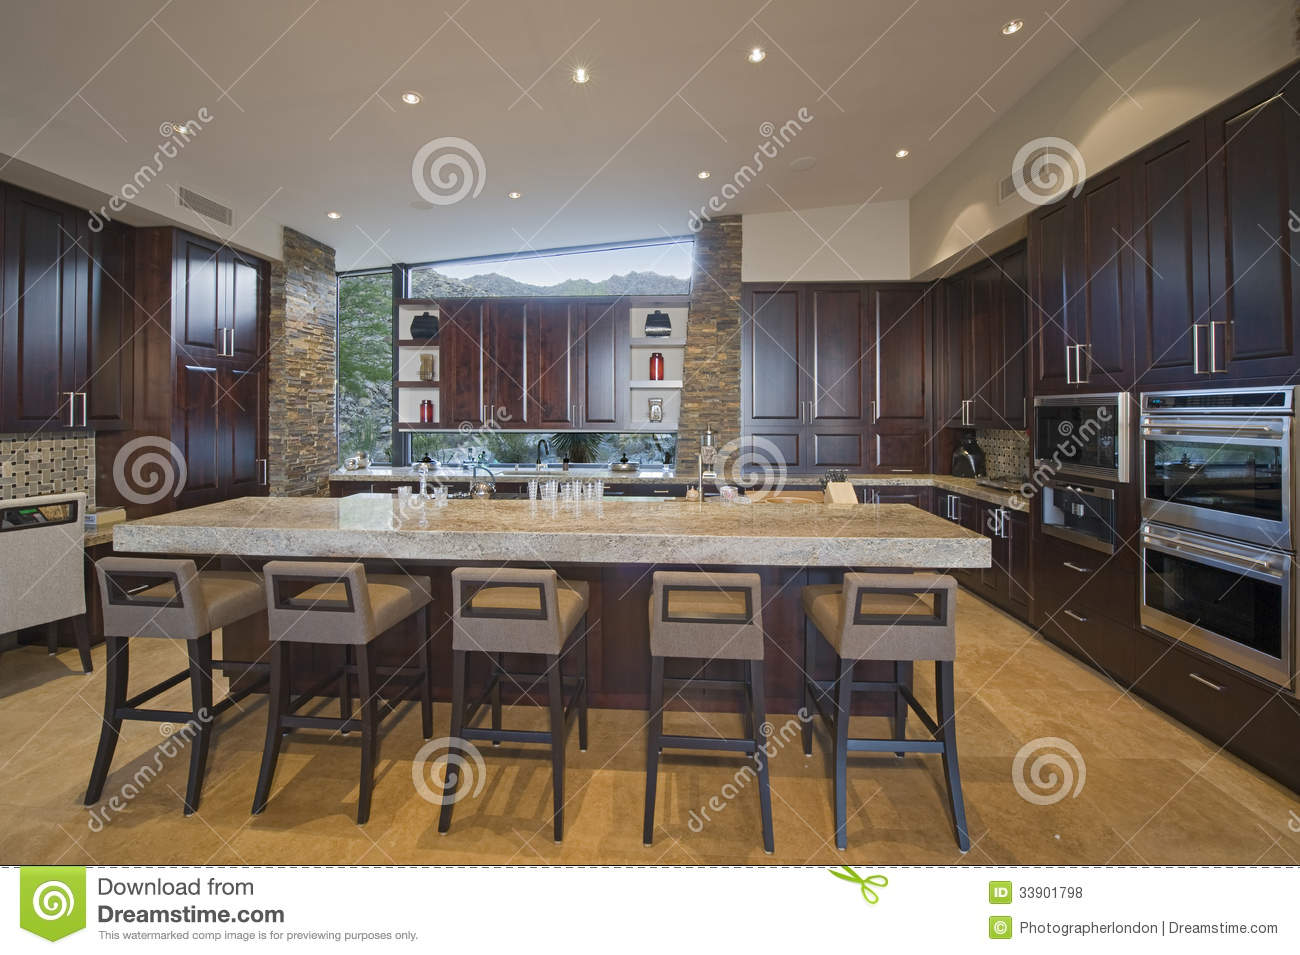 Spacious Kitchen With Stools At Island In House Stock